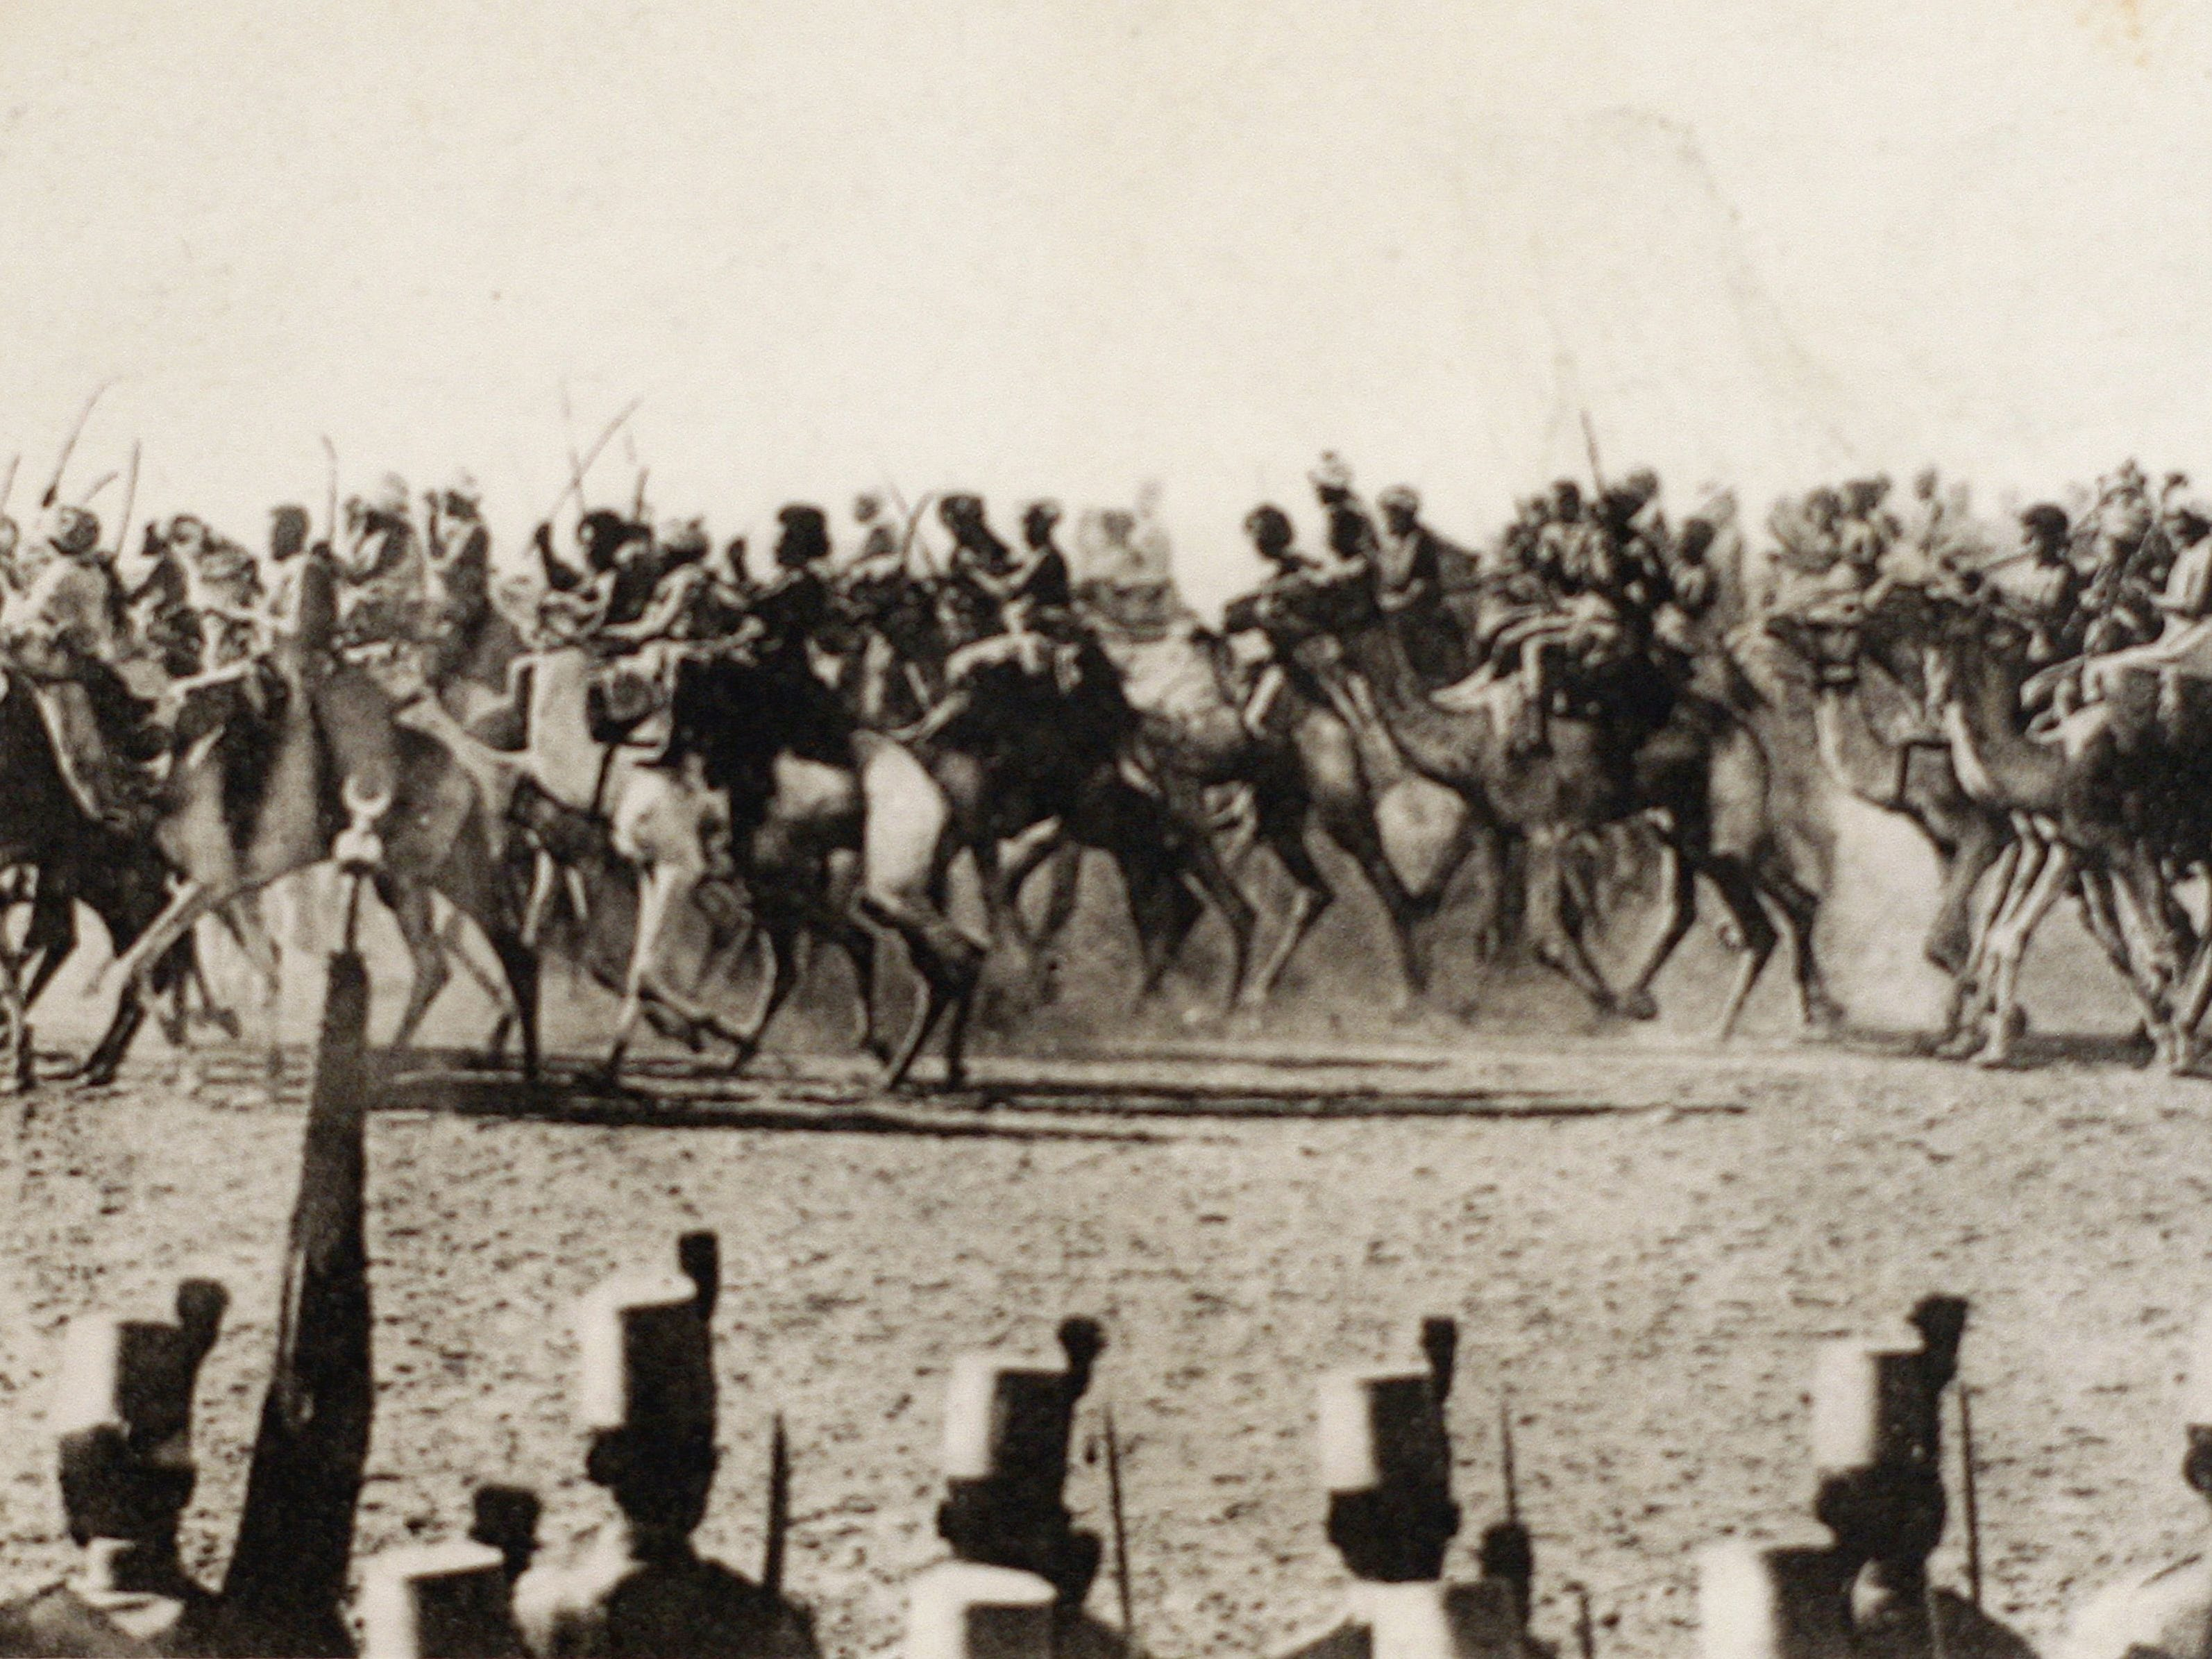 A postcard released by the Historial de Peronne, Museum of WWI, shows Egyptian cavalry troops on camels in 1914 during the World War I.